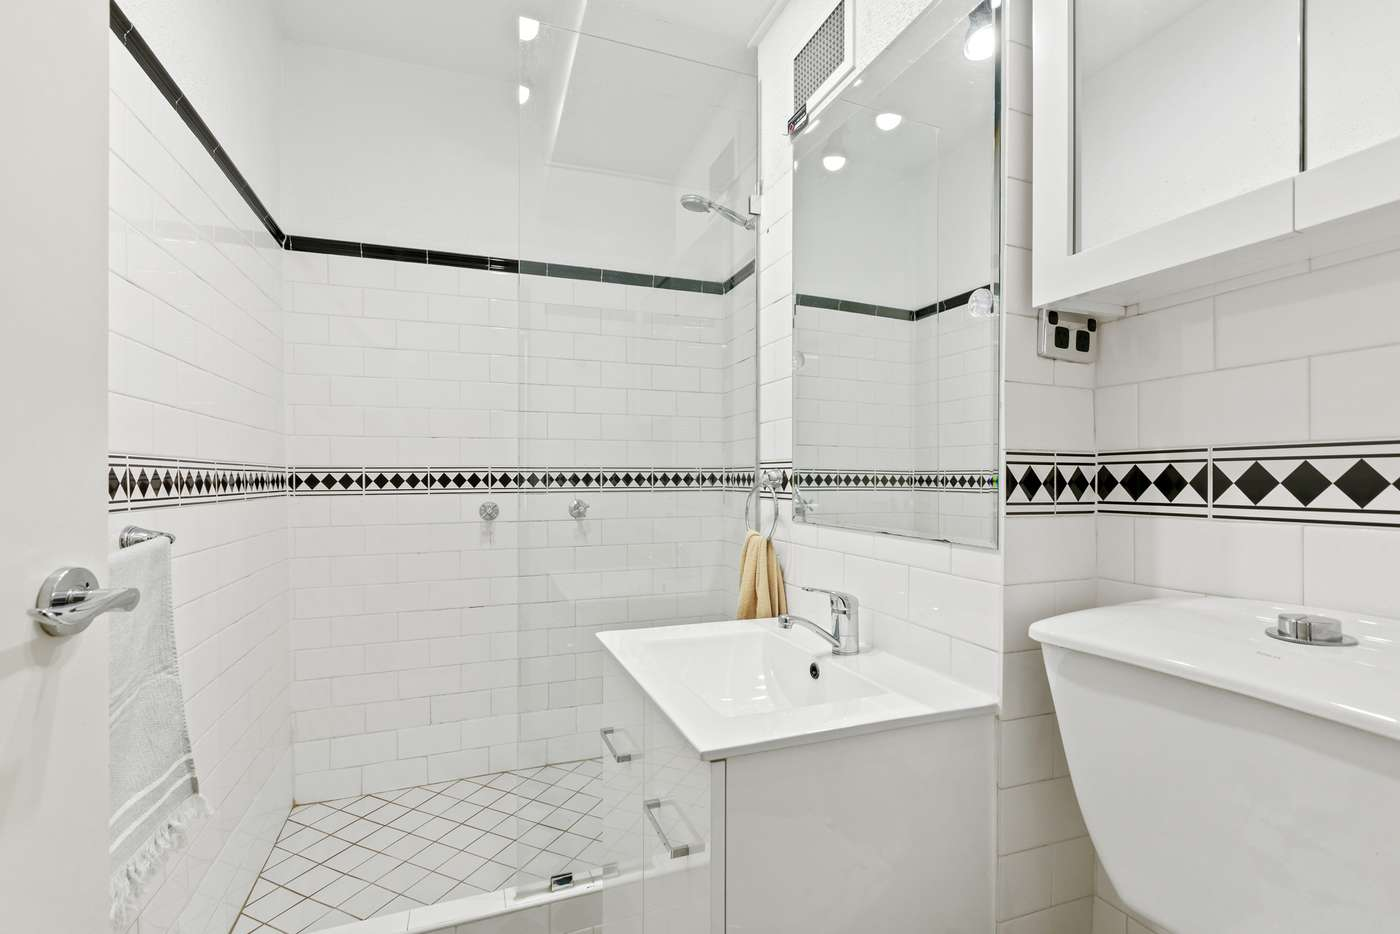 Sixth view of Homely apartment listing, 48/6-14 Darley Street, Darlinghurst NSW 2010